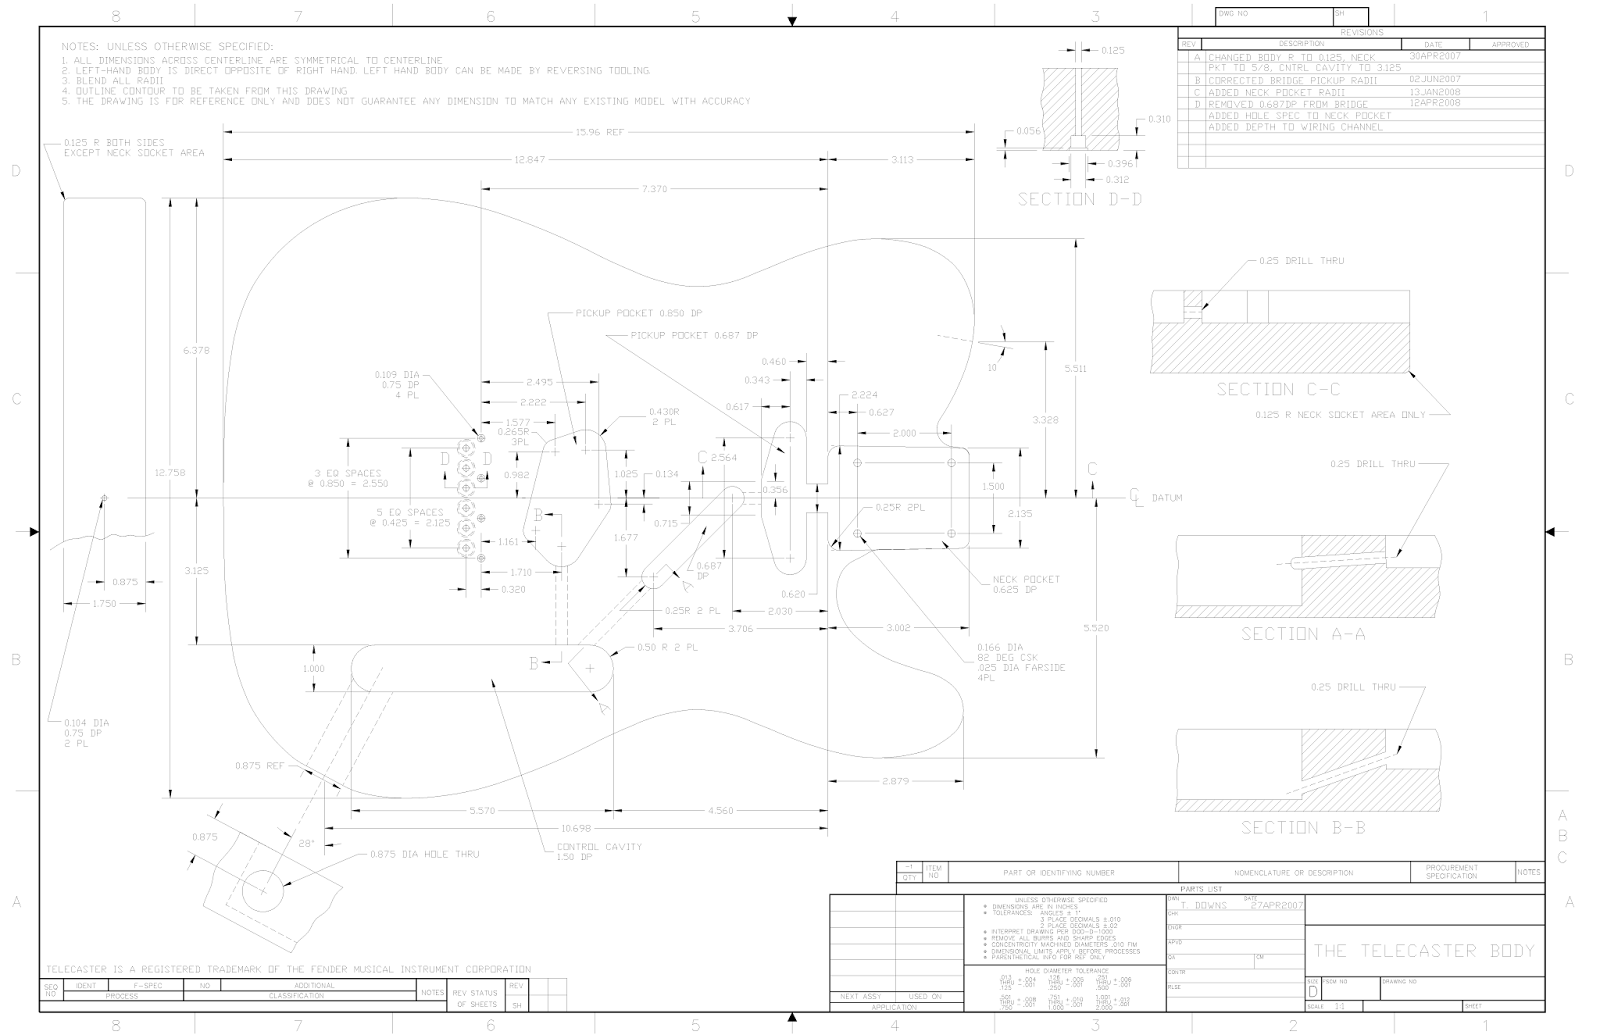 Wy 9456 2 Router Wiring Diagram Wiring Diagram